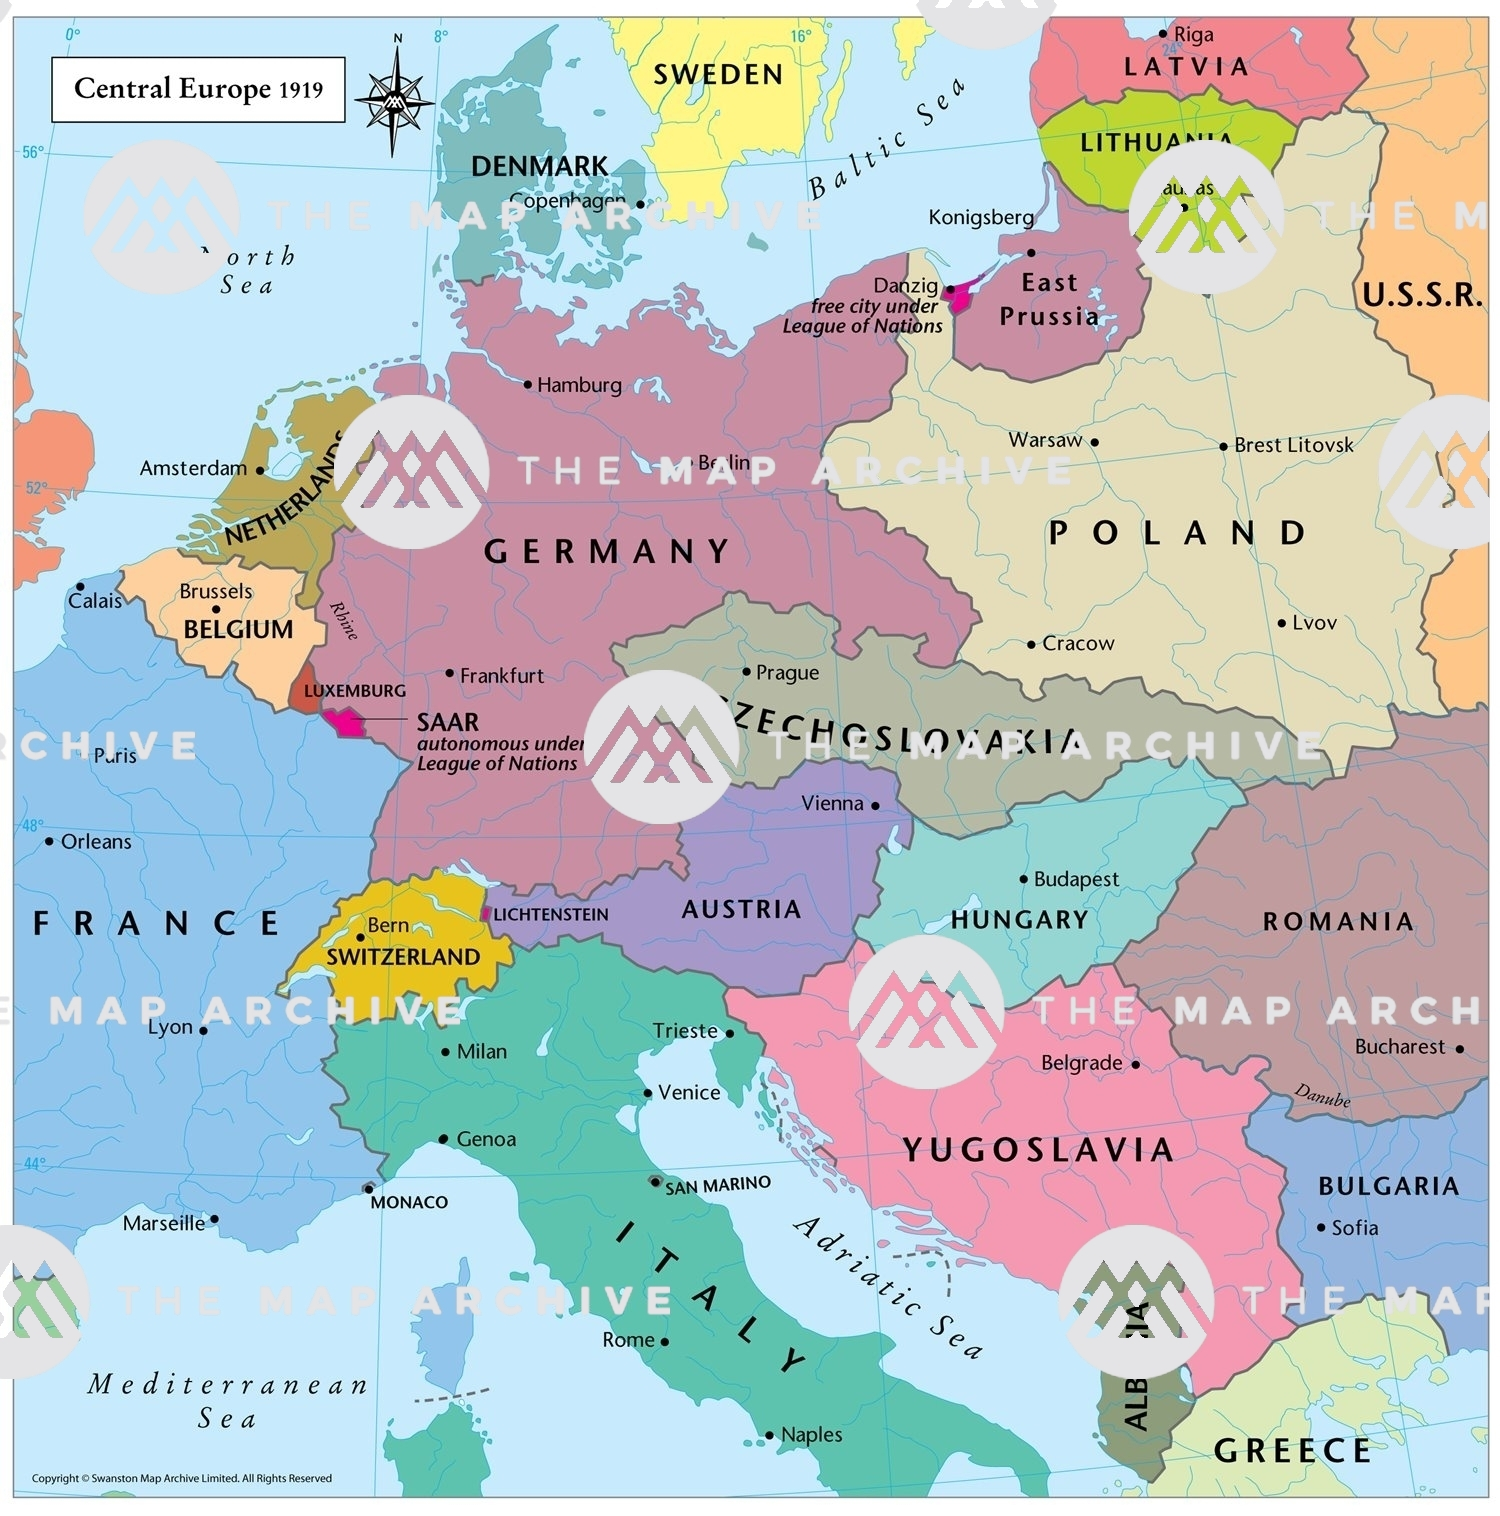 Central Europe 1919